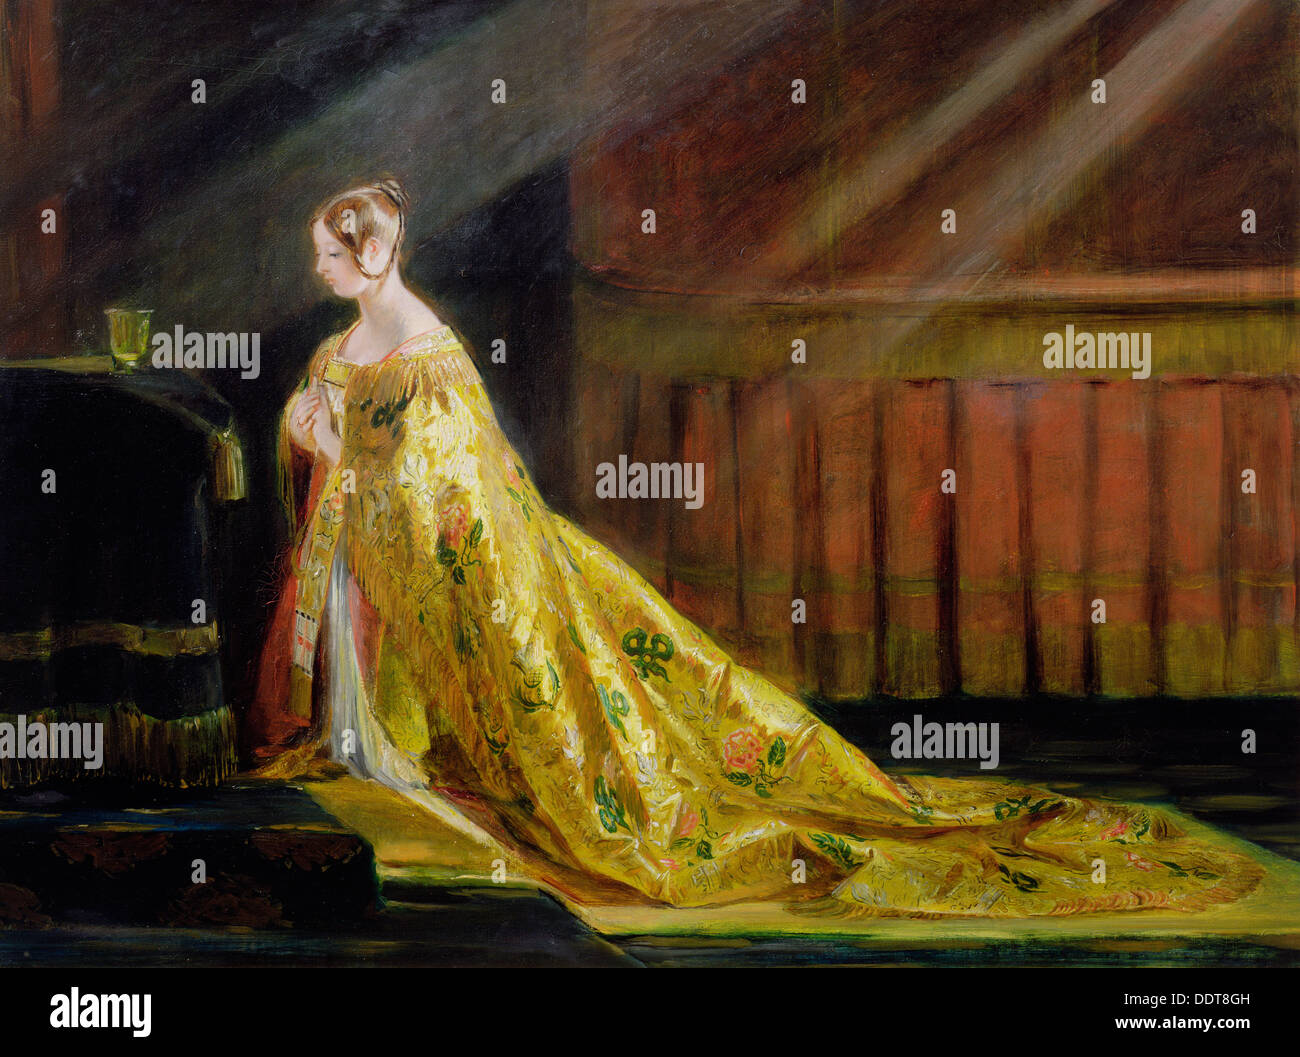 'La reine Victoria dans sa robe de couronnement', 1838. Artiste : Charles Robert Leslie Photo Stock